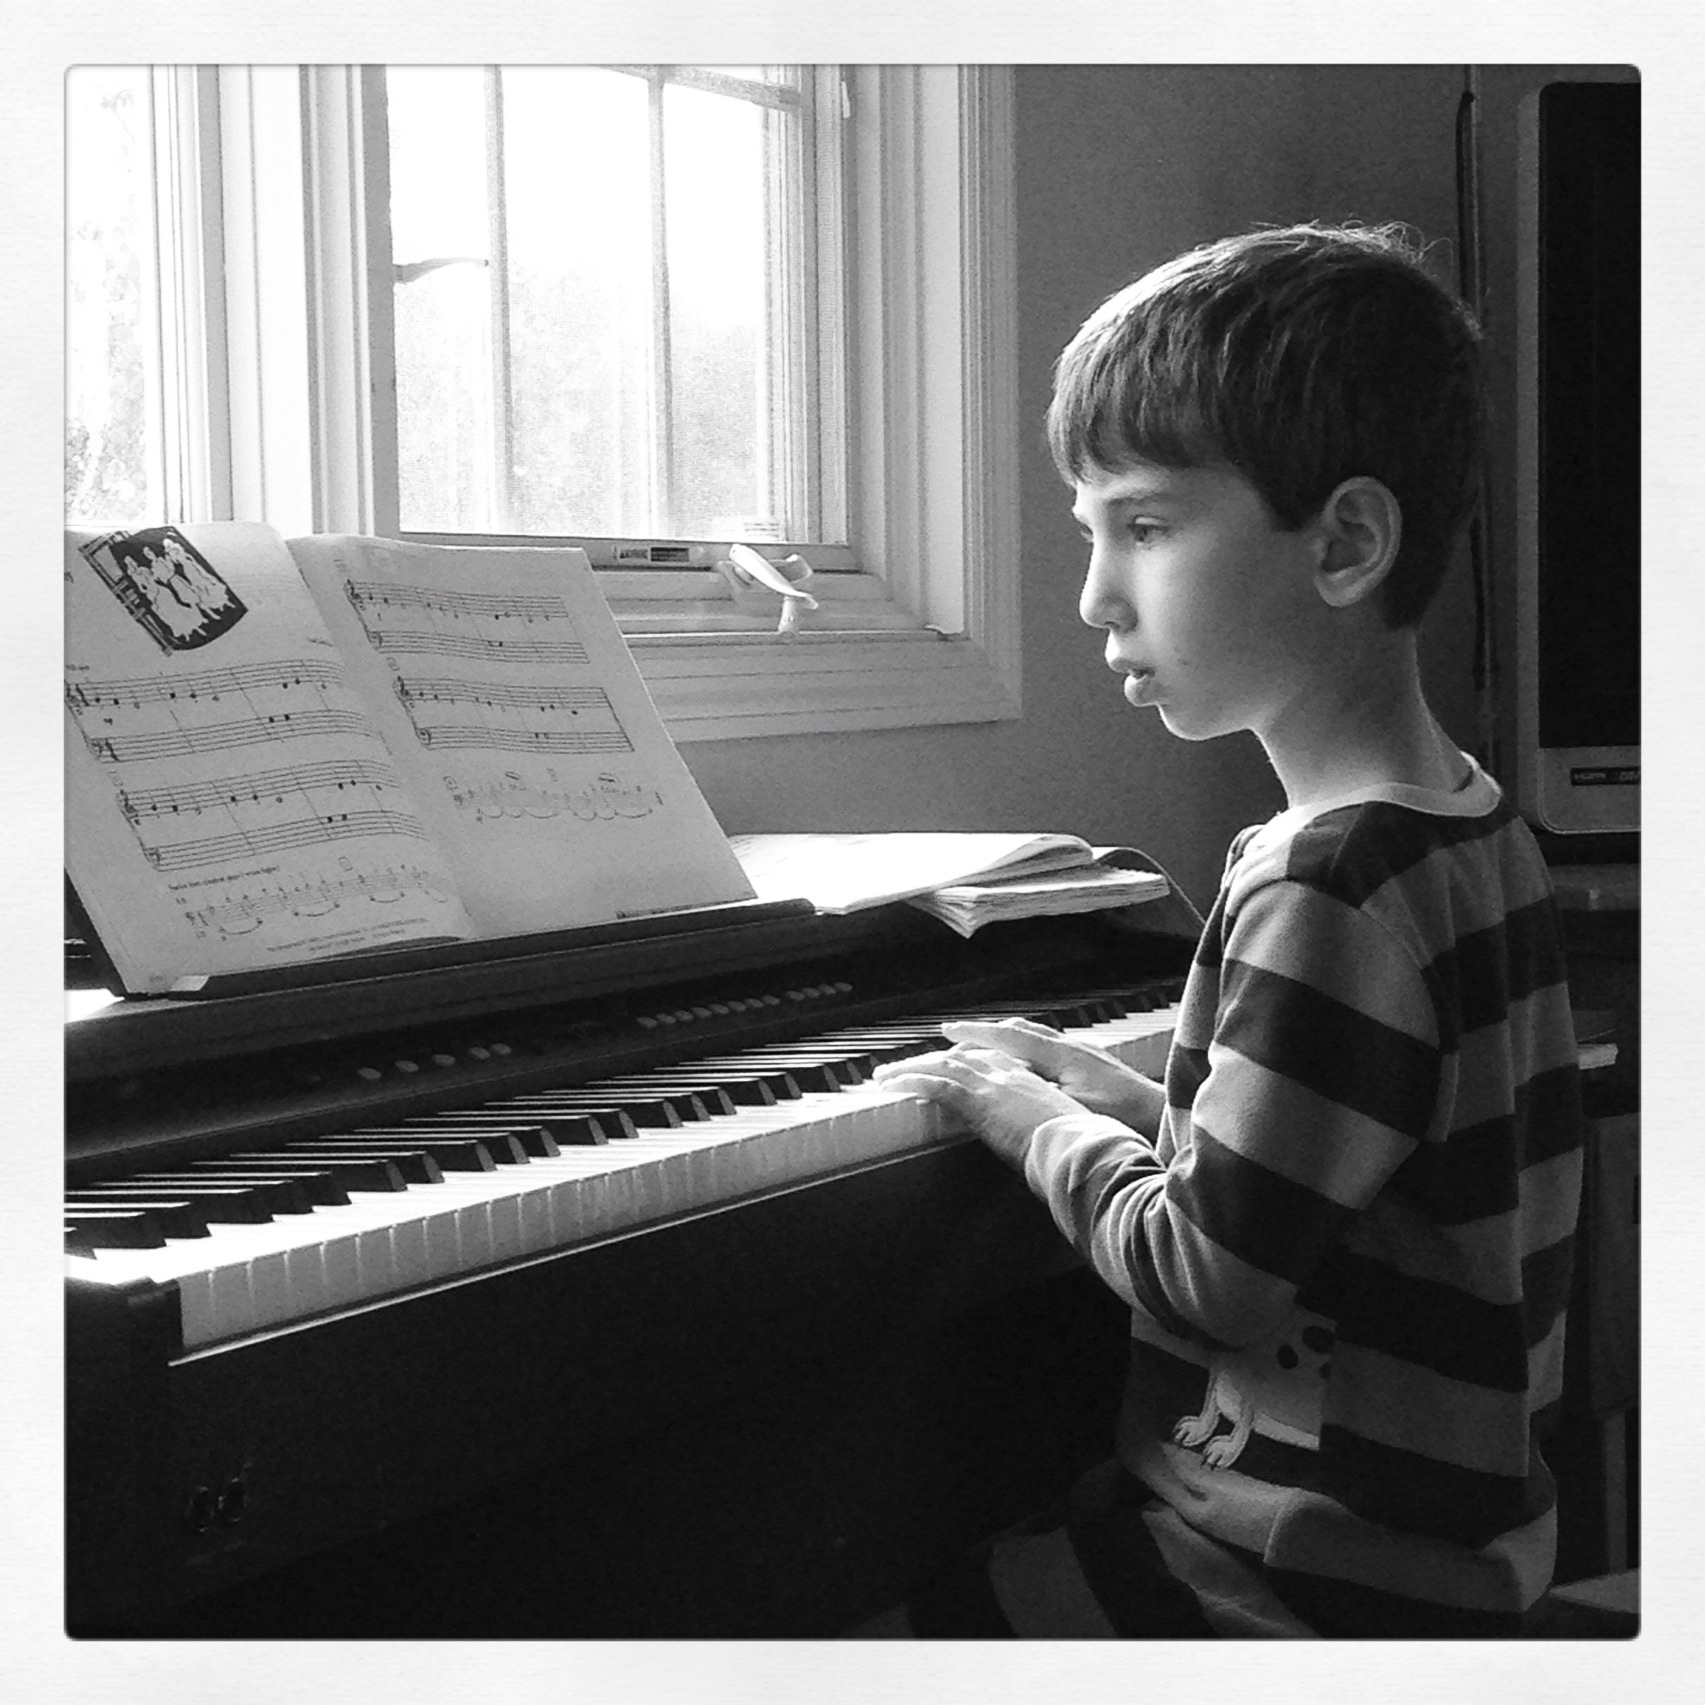 Jack playing piano sept 2013